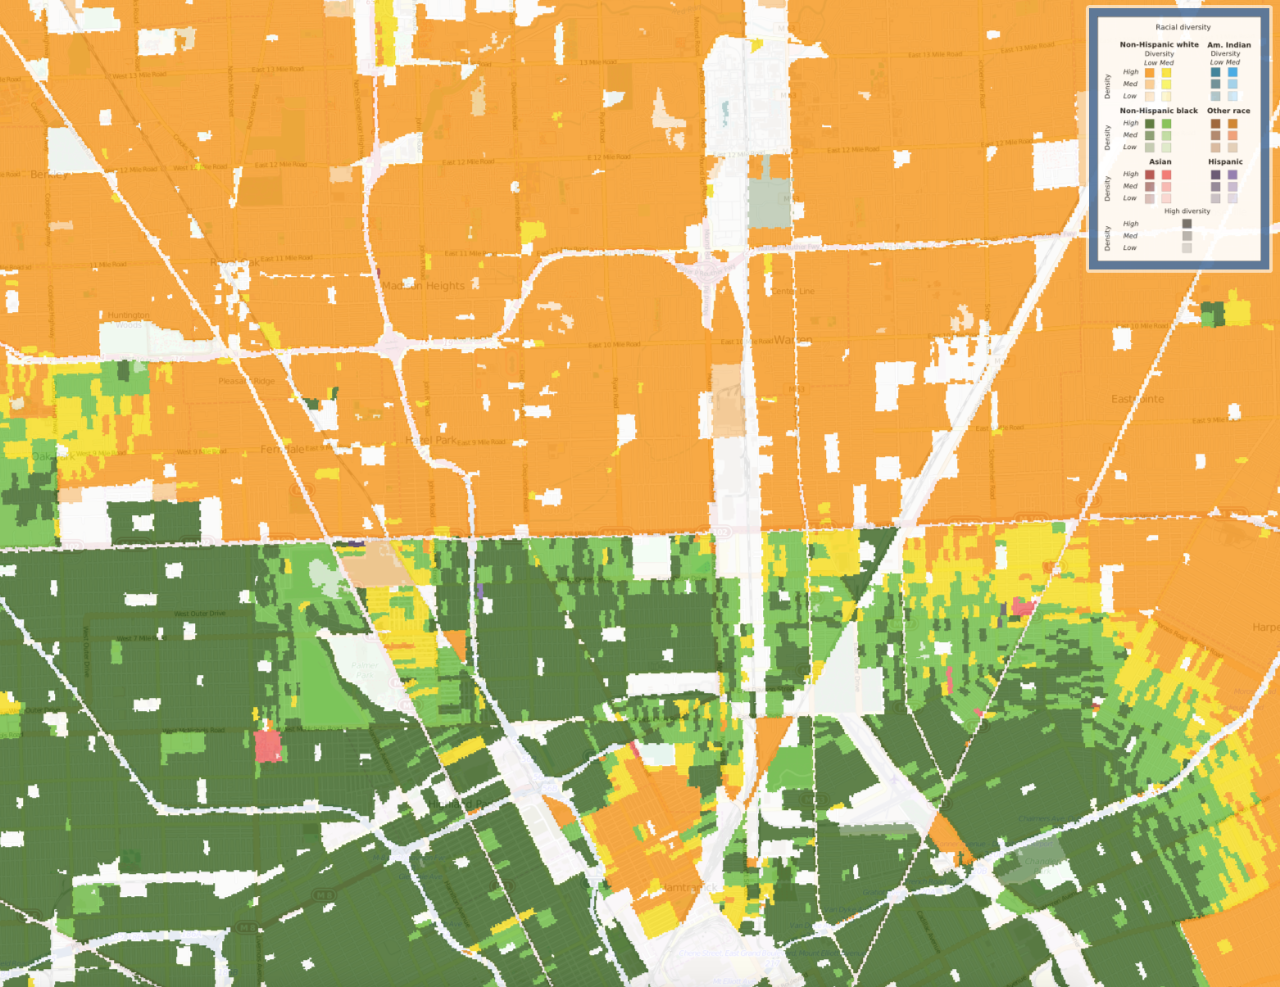 A 1990 map shows how Detroit was segregated by race along 8 Mile Road.